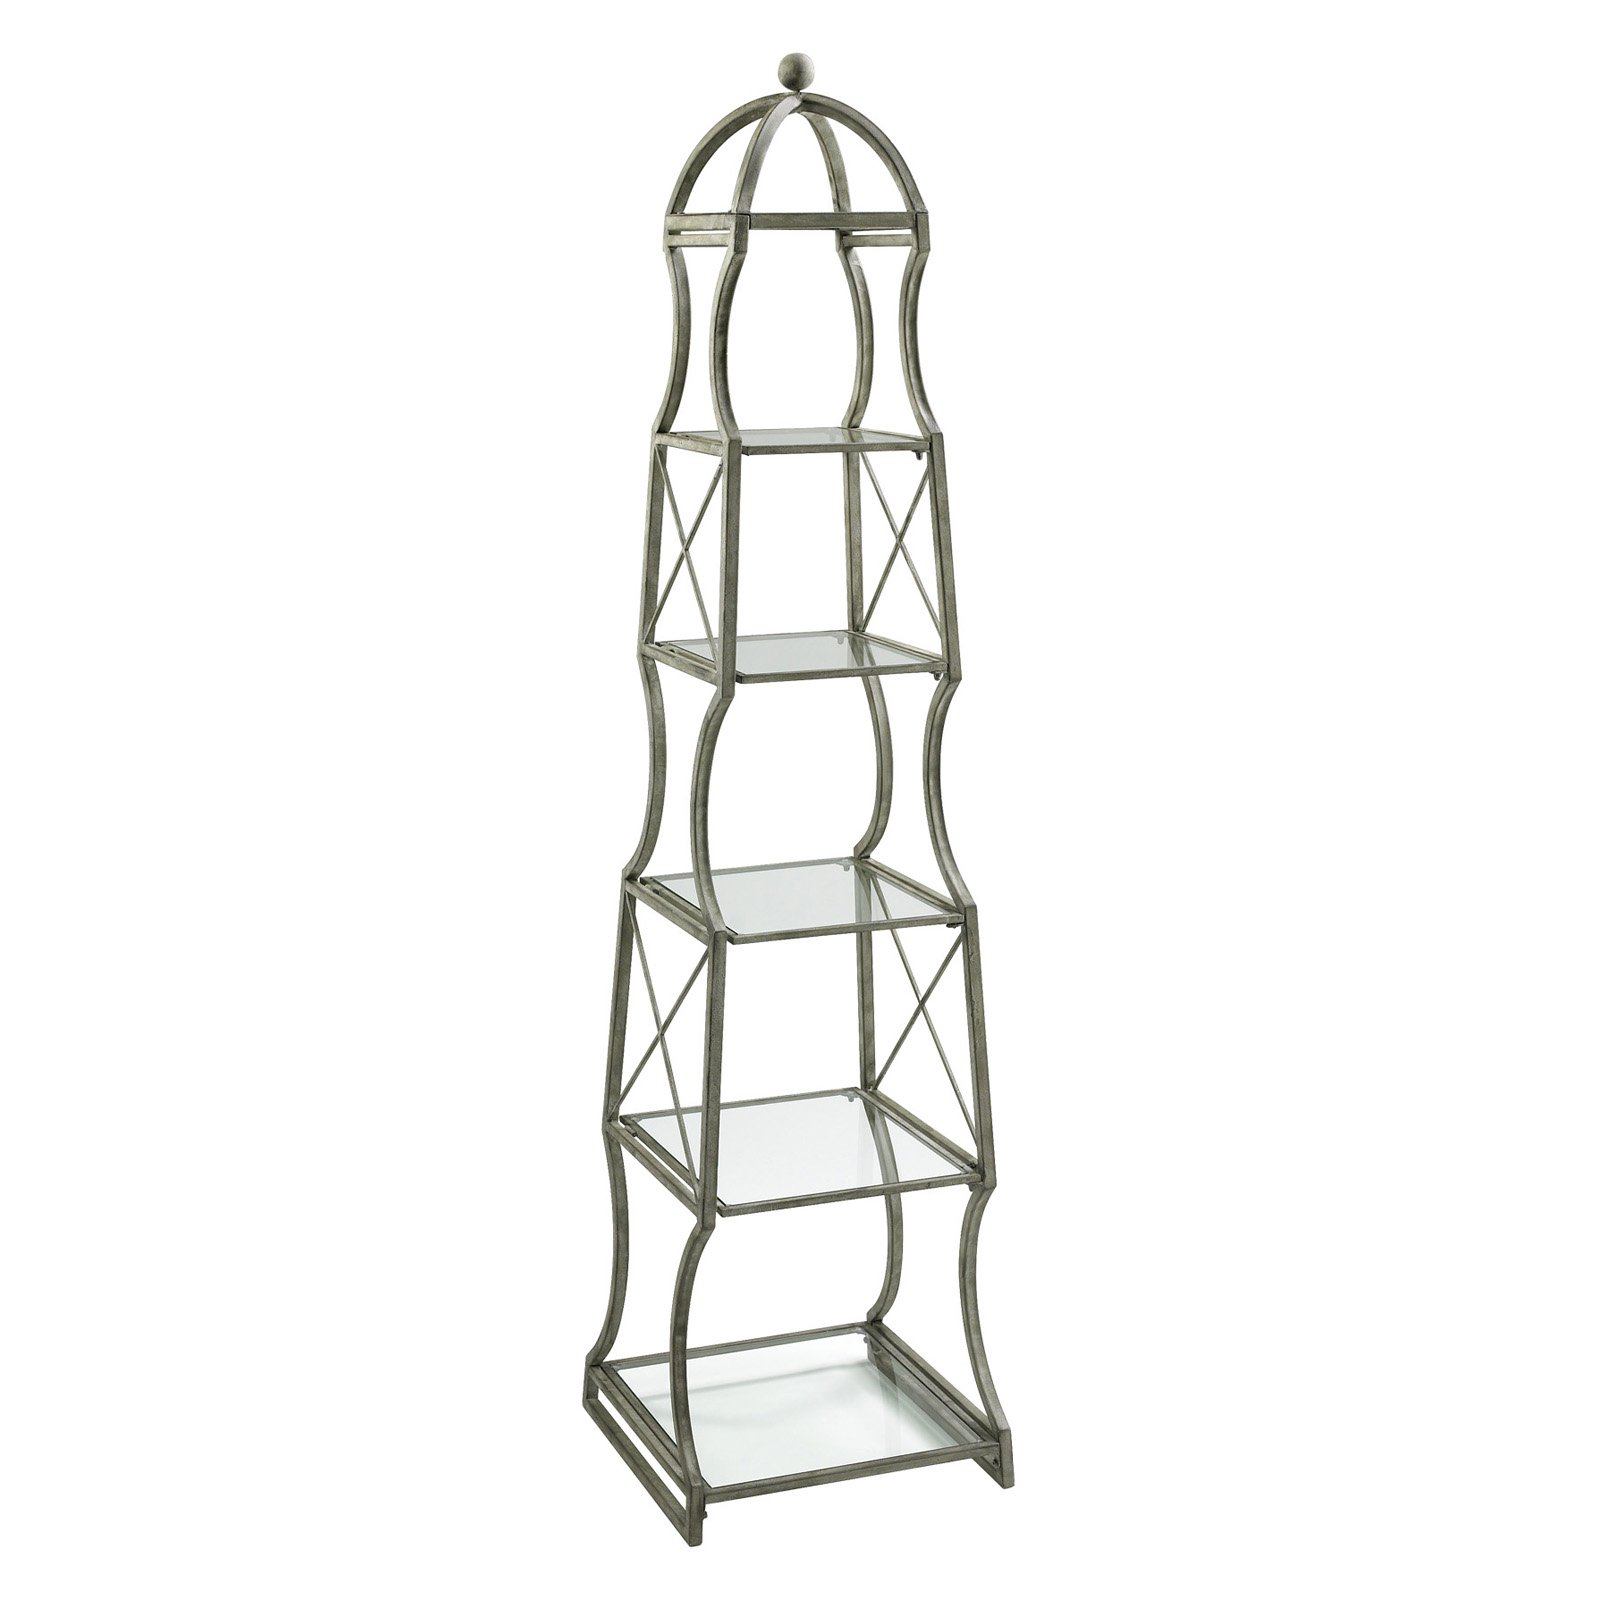 Cyan Design Chester Etagere Bookcase by Cyan Design